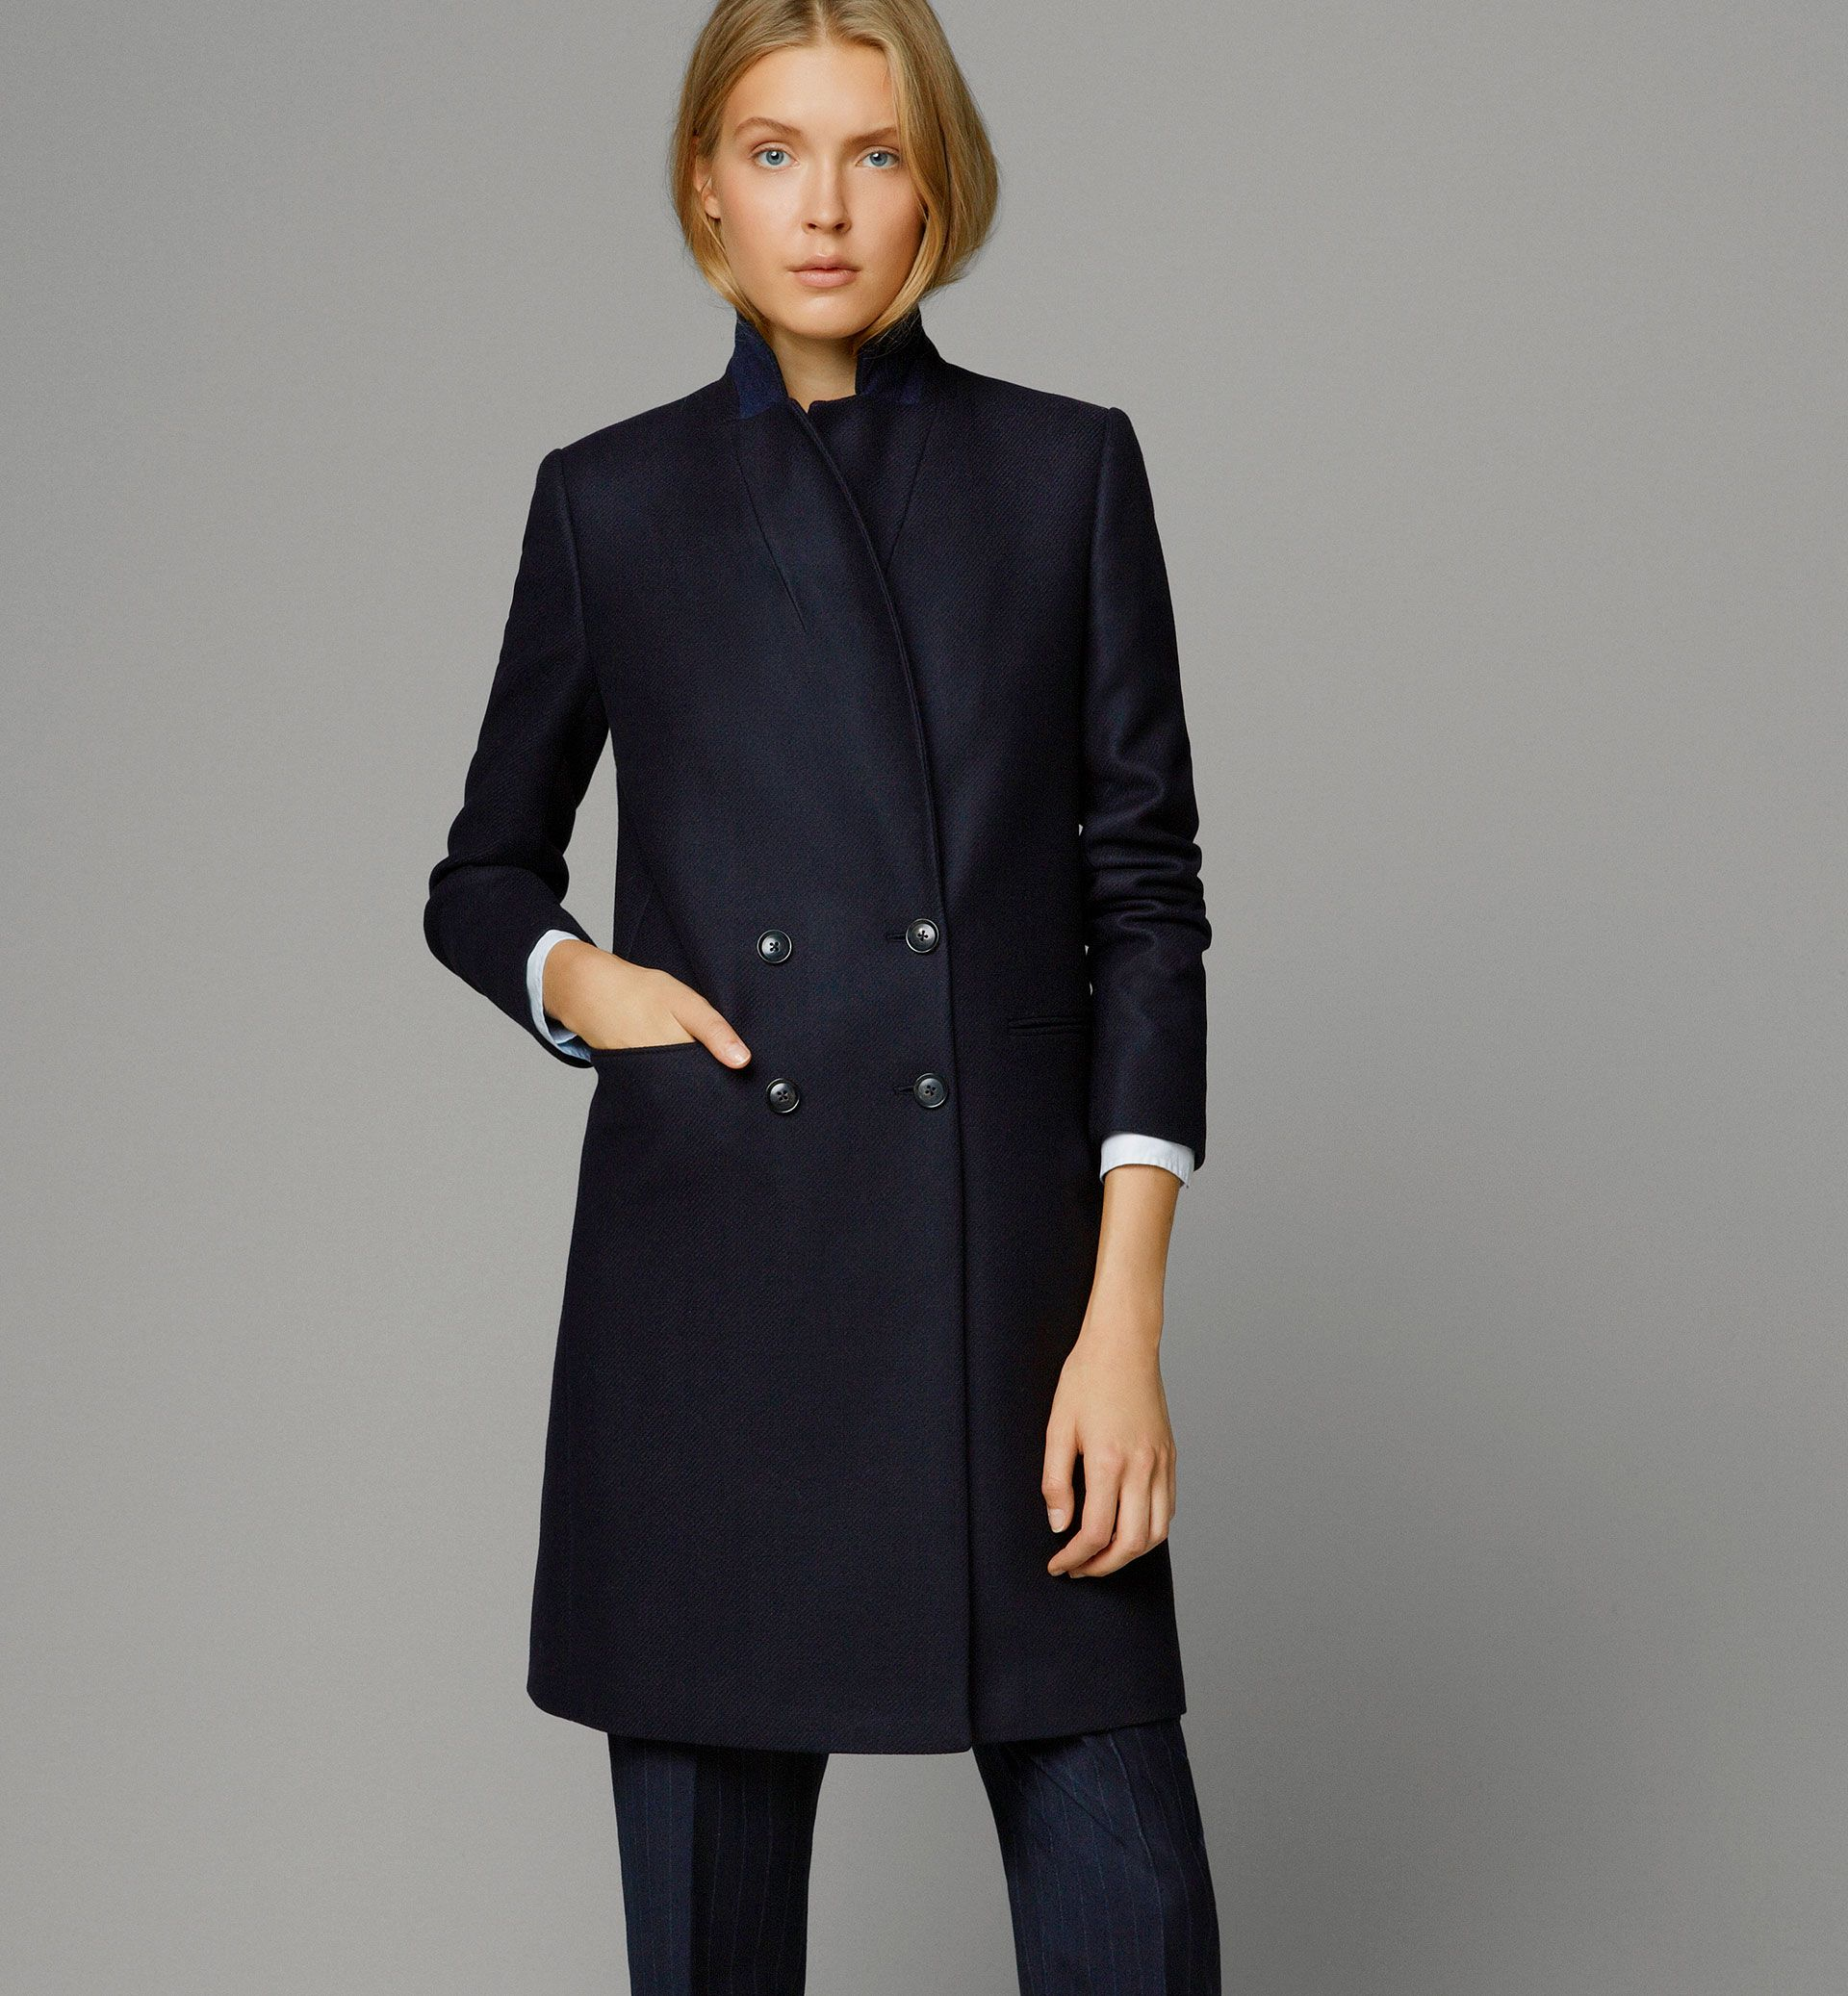 Massimo Dutti - 6426/933 - NAVY COAT - Coats & Jackets | Coats and ...